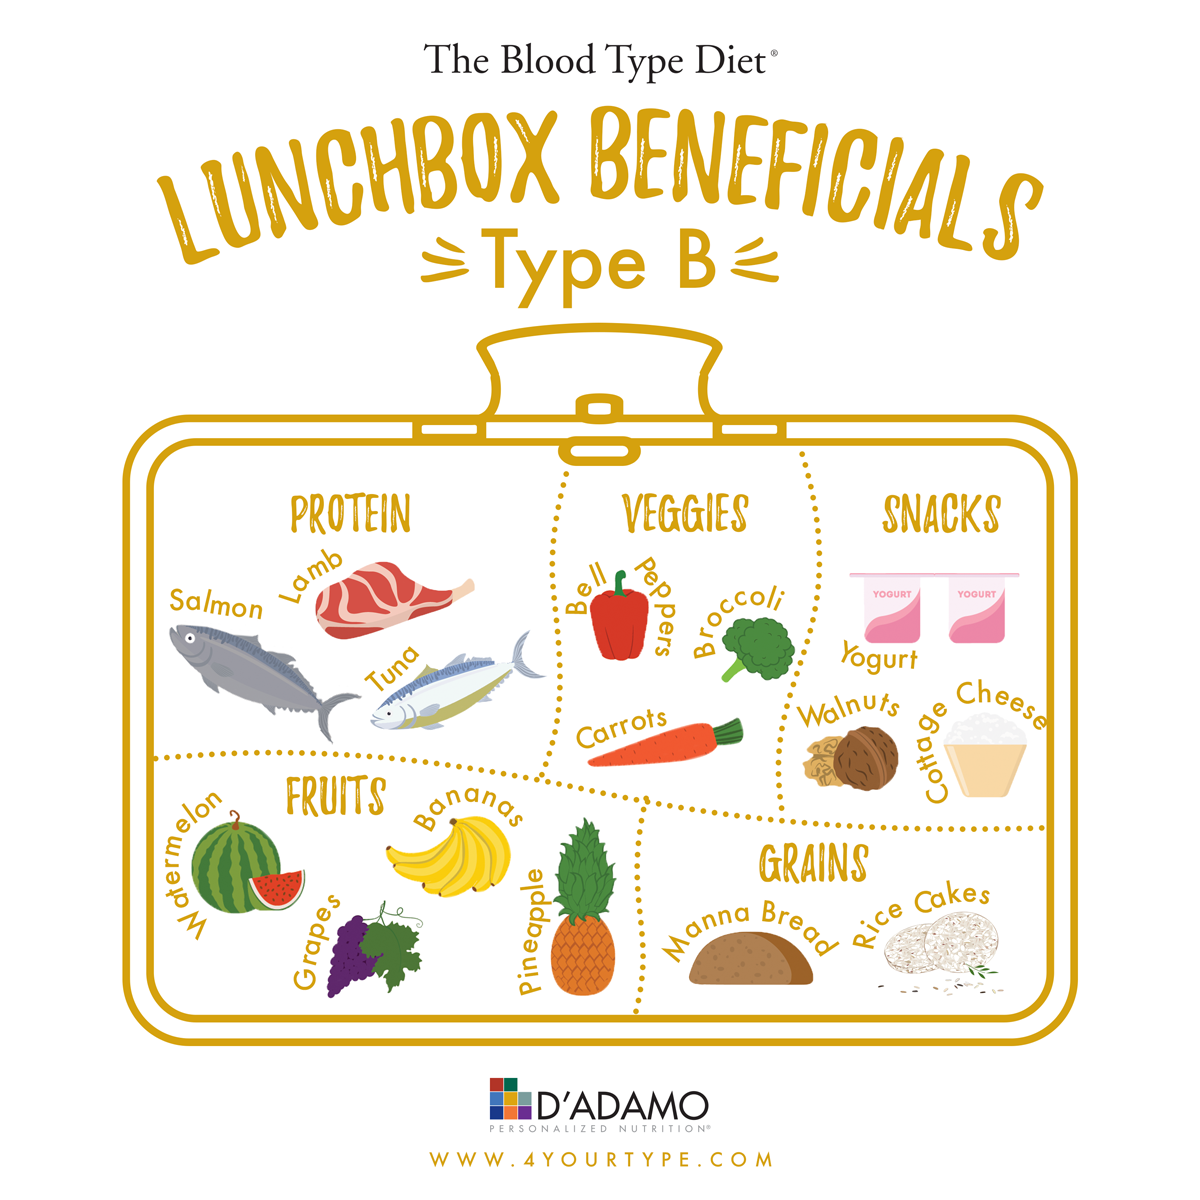 Lunchbox Beneficials Blood Type B